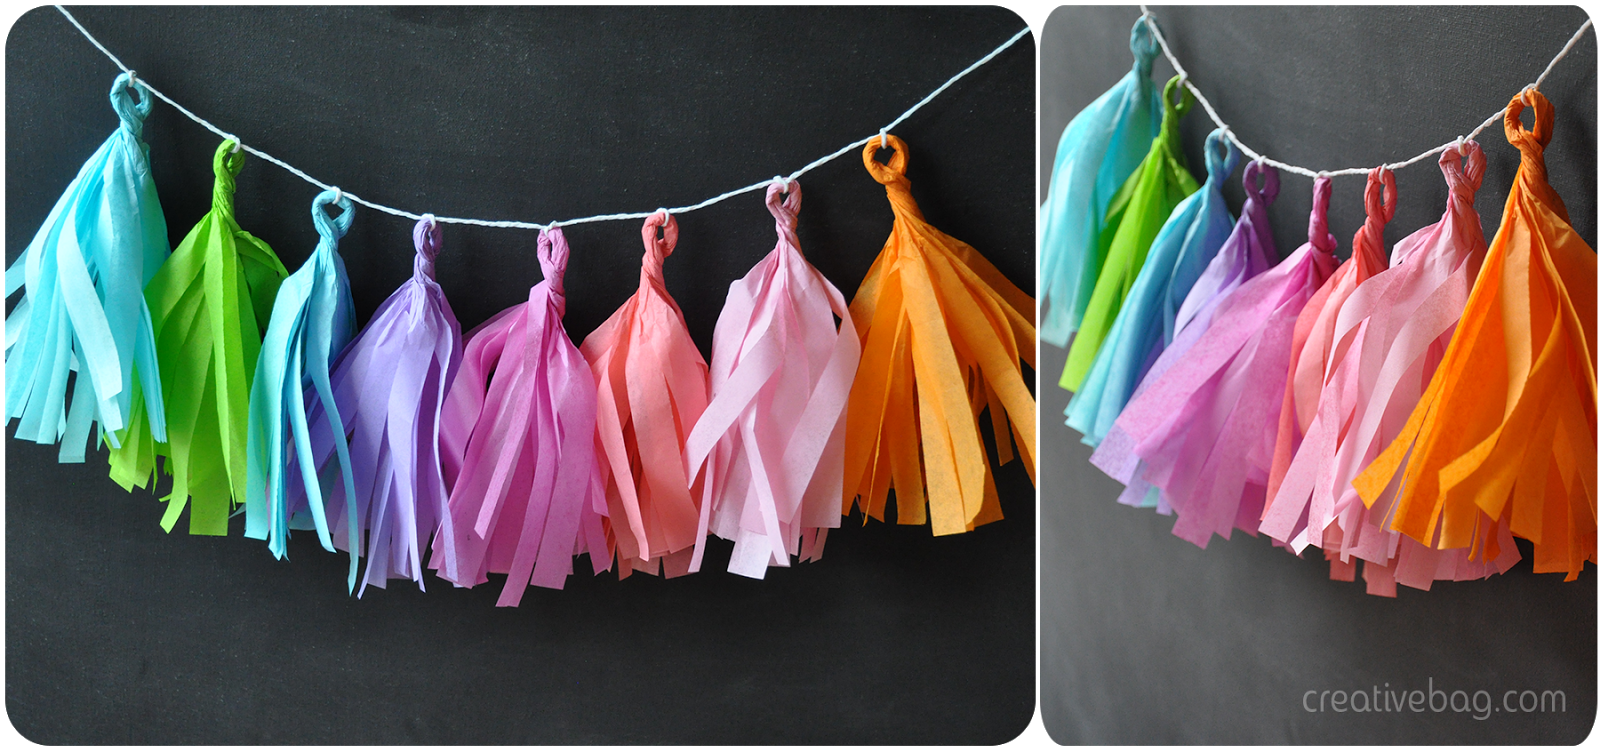 diy tissue paper tassel garland colour inspiration | by Lorrie Everitt for CreativeBag.com